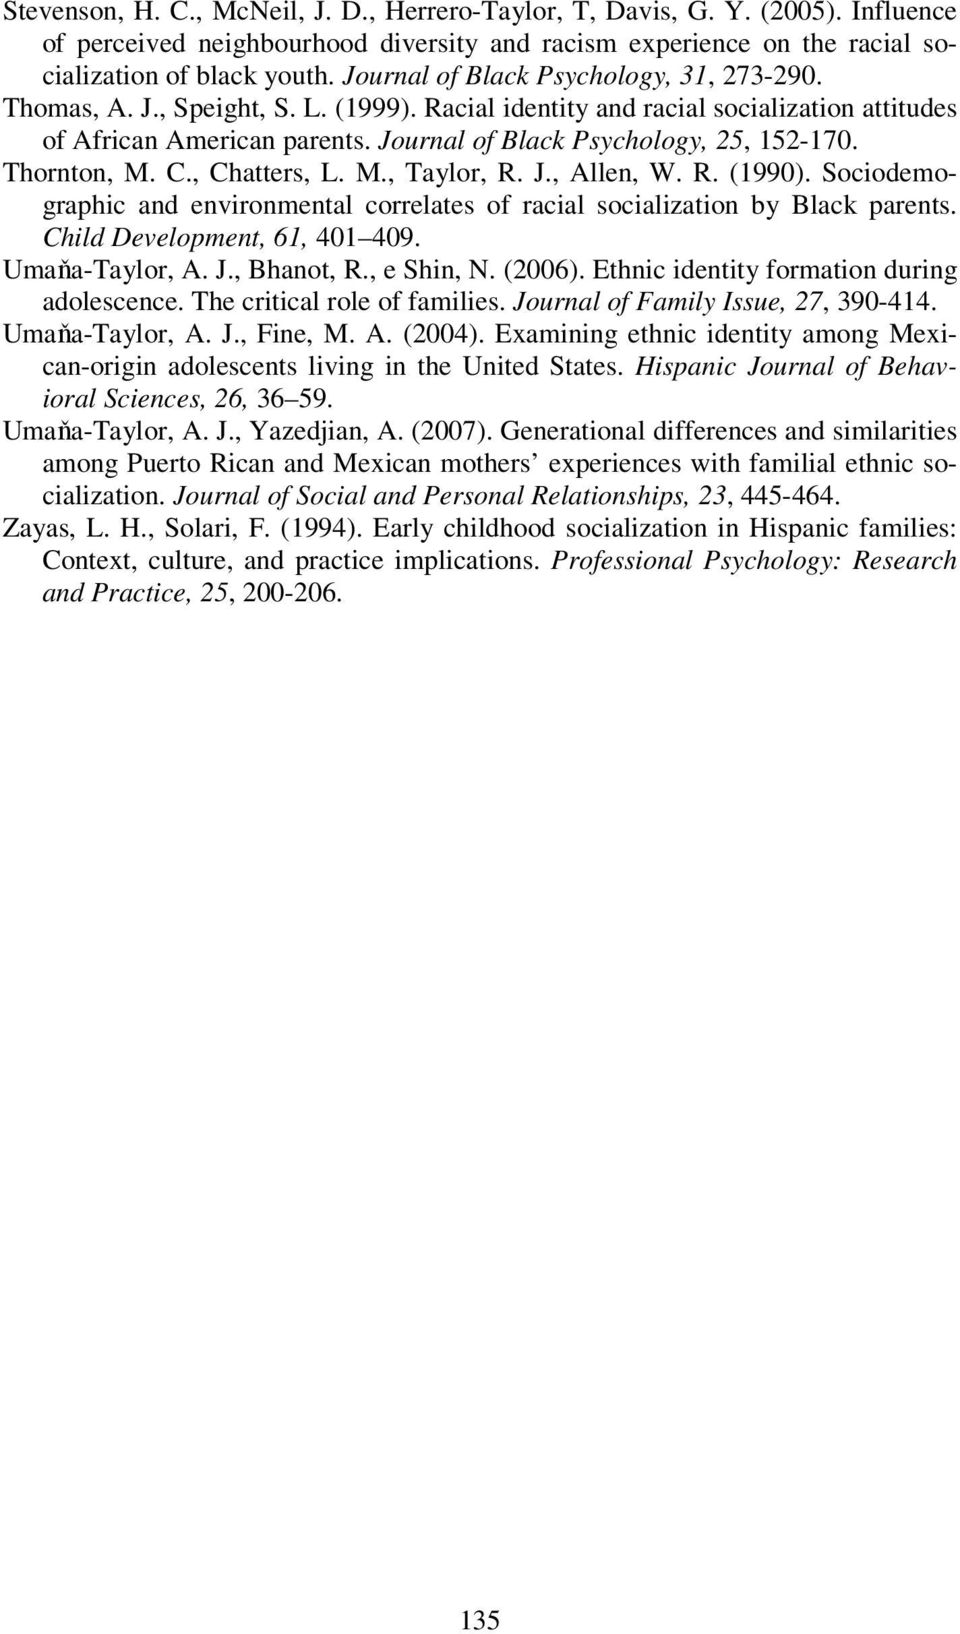 Journal of Black Psychology, 25, 152-170. Thornton, M. C., Chatters, L. M., Taylor, R. J., Allen, W. R. (1990). Sociodemographic and environmental correlates of racial socialization by Black parents.